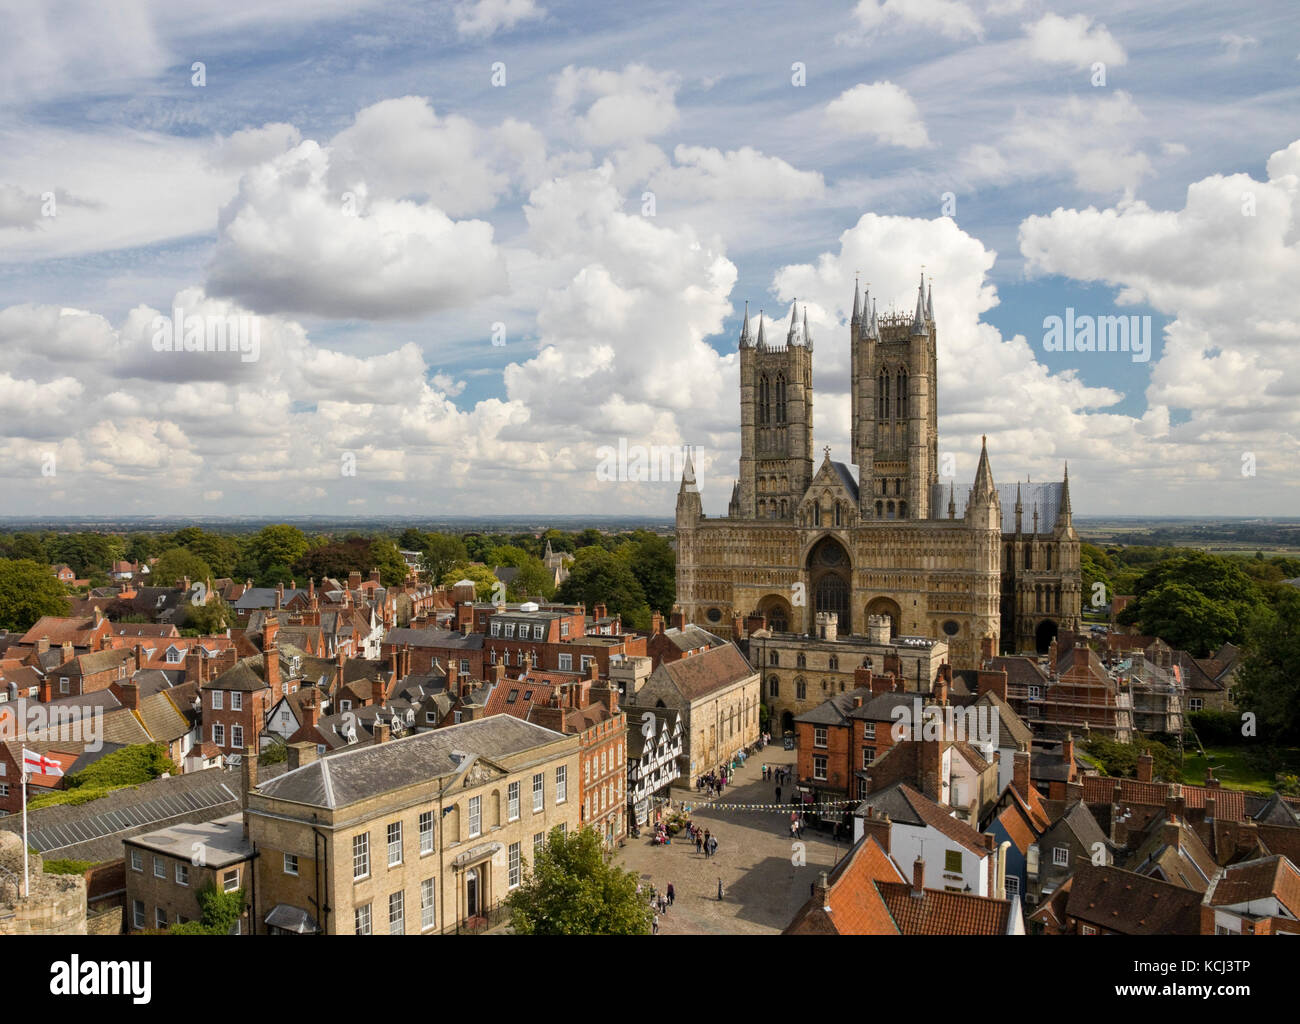 Historic Lincoln cathedral in England - Stock Image